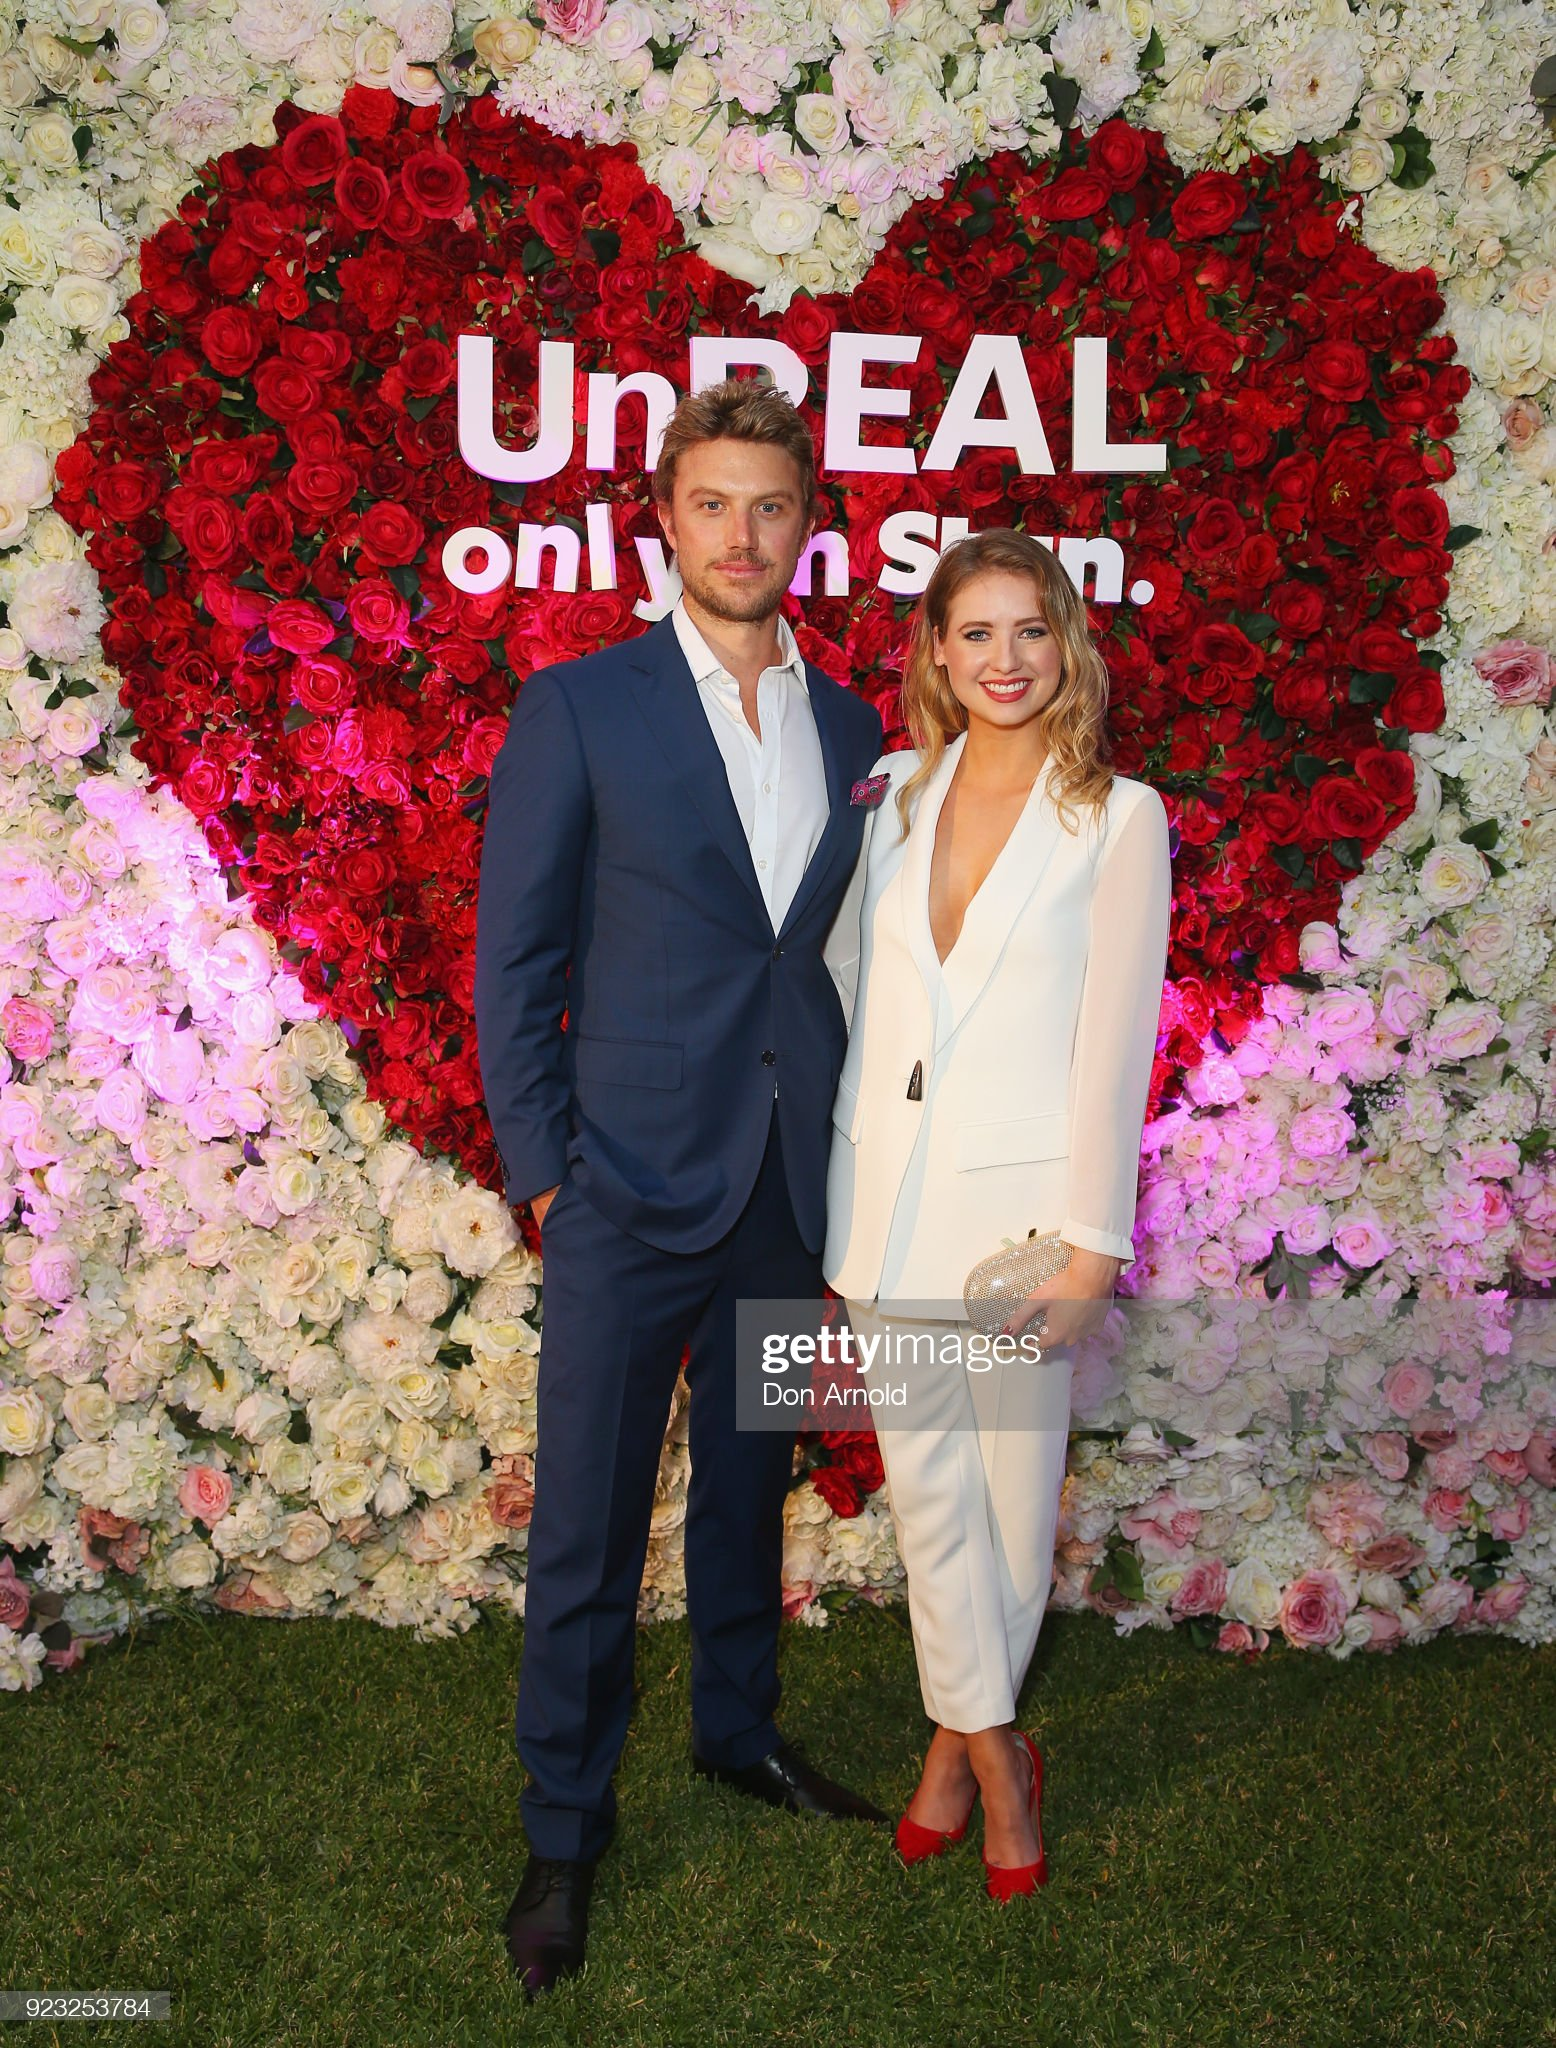 ¿Cuánto mide Adam Demos? - Altura - Real height Adam-demos-and-kassandra-clementi-attends-the-unreal-australian-on-picture-id923253784?s=2048x2048